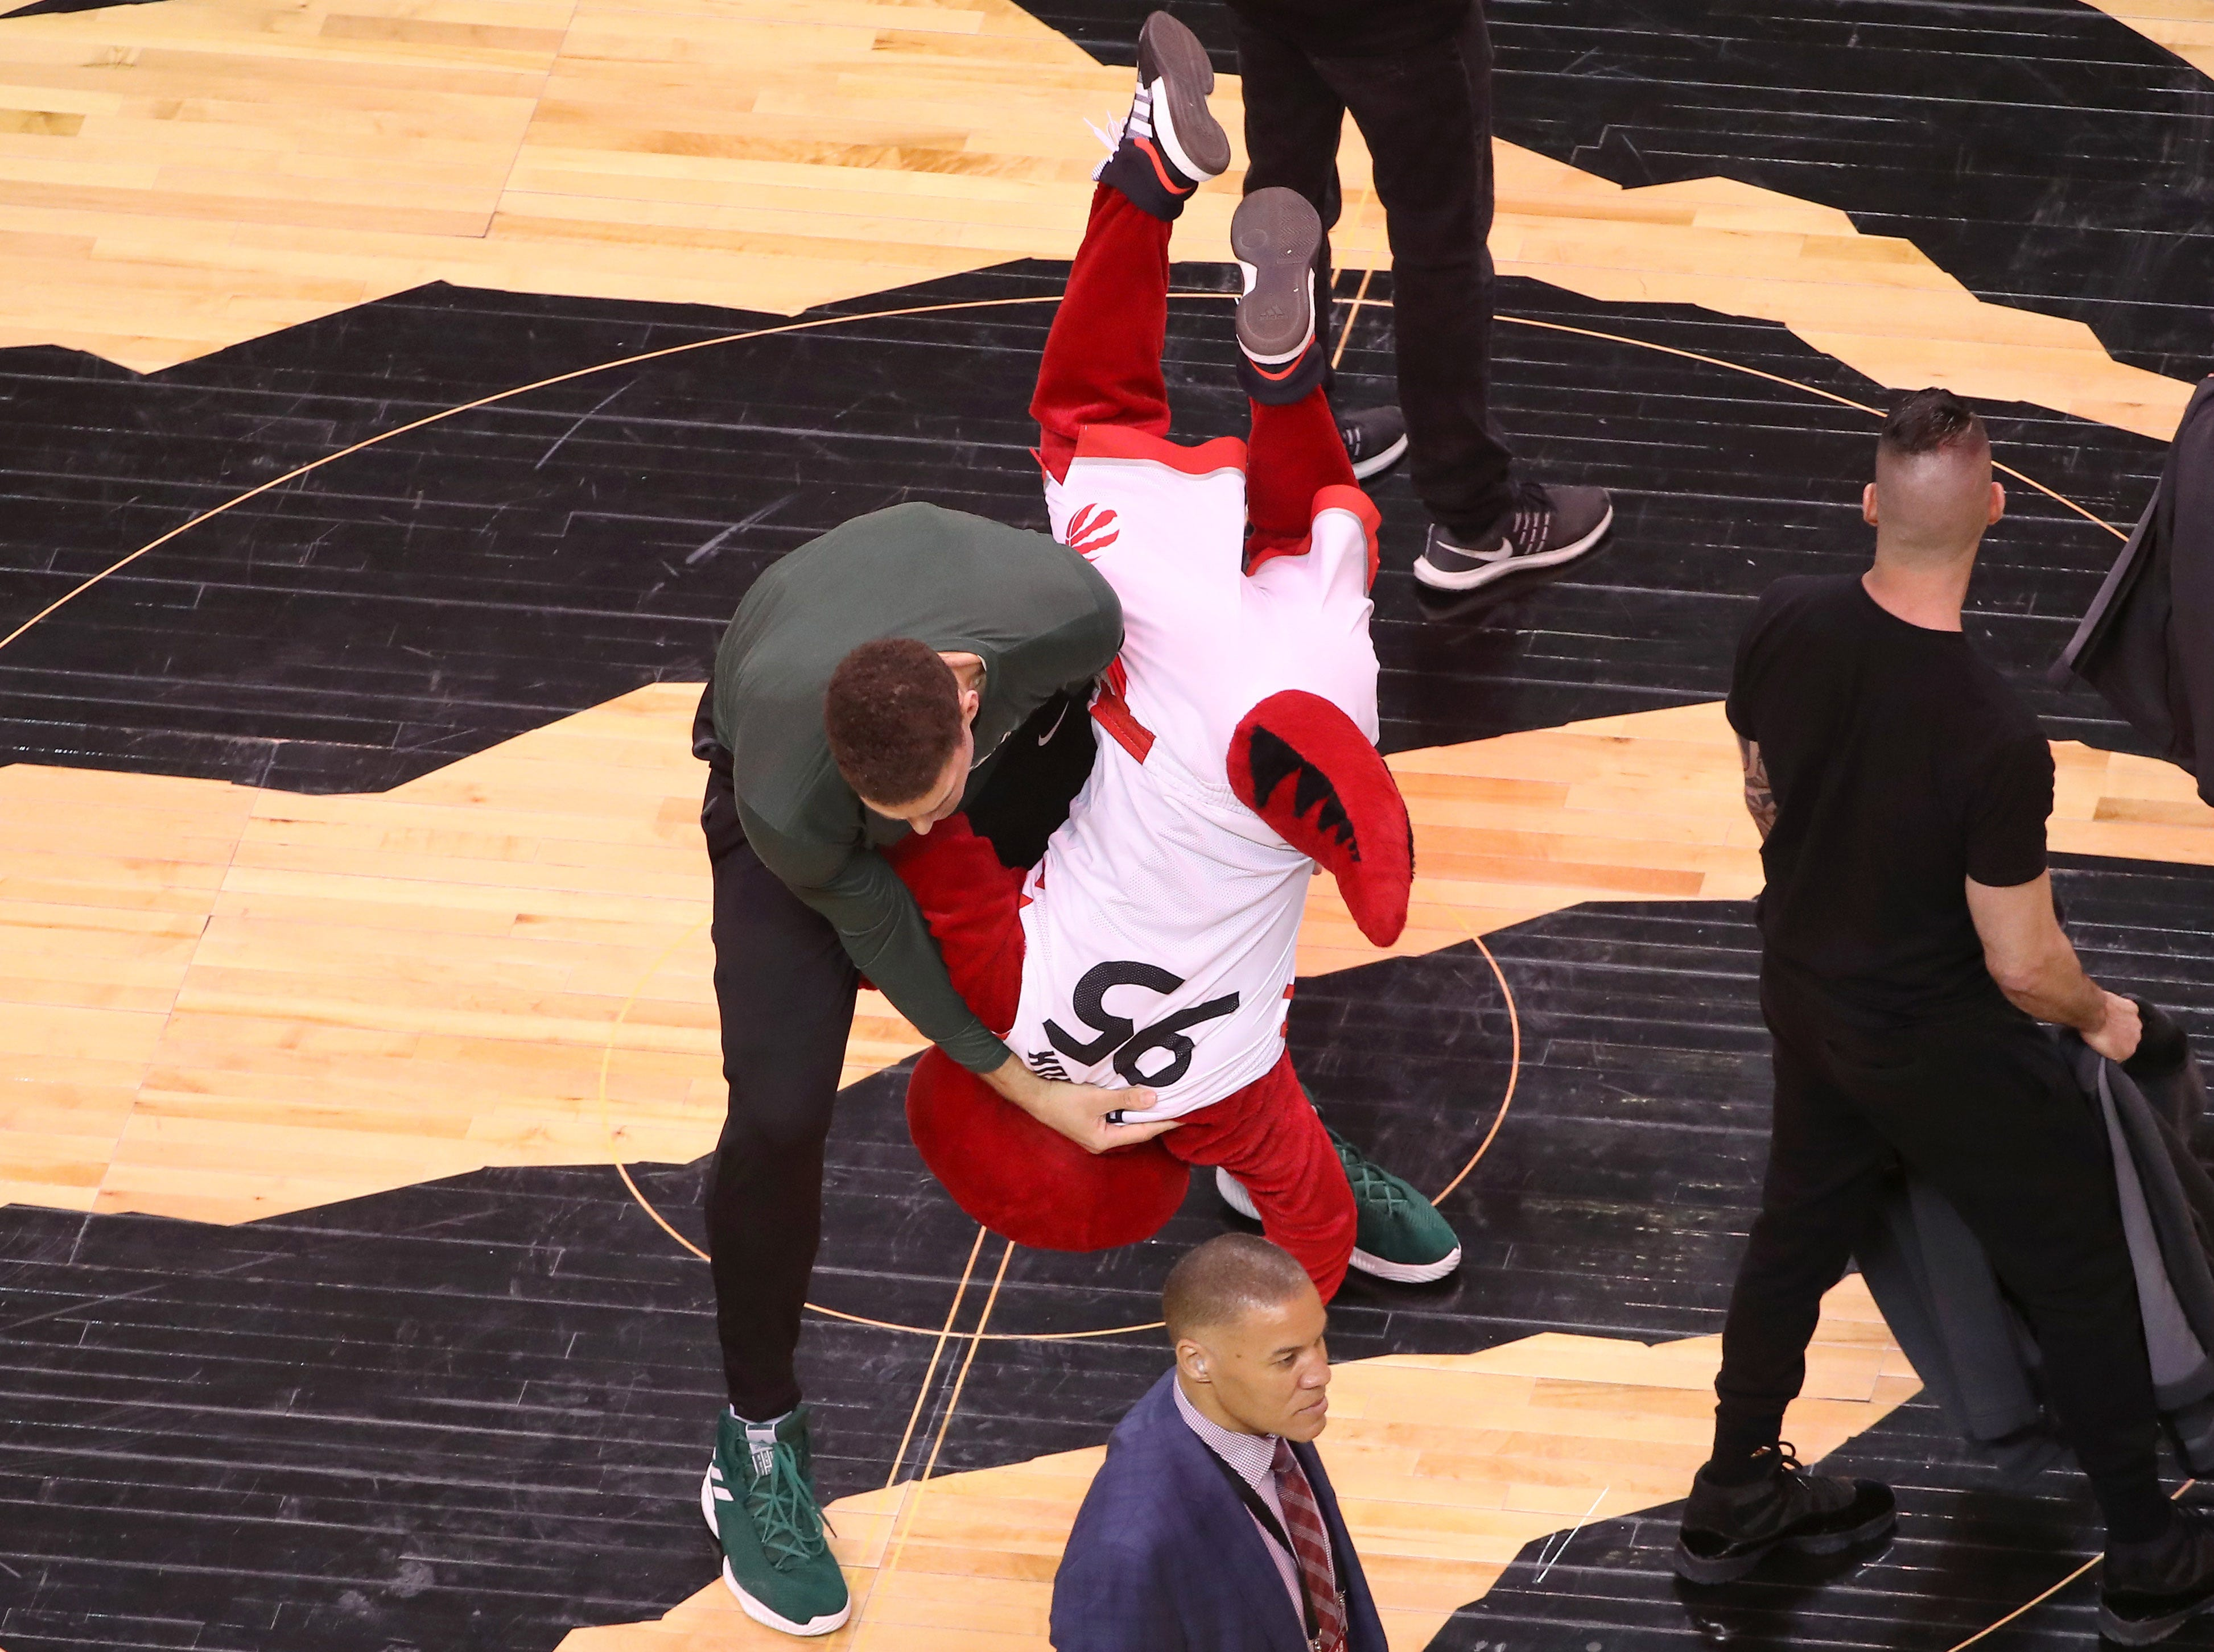 May 19: Milwaukee Bucks center Brook Lopez bodyslams the Toronto Raptors mascot during warm-ups before Game 3.